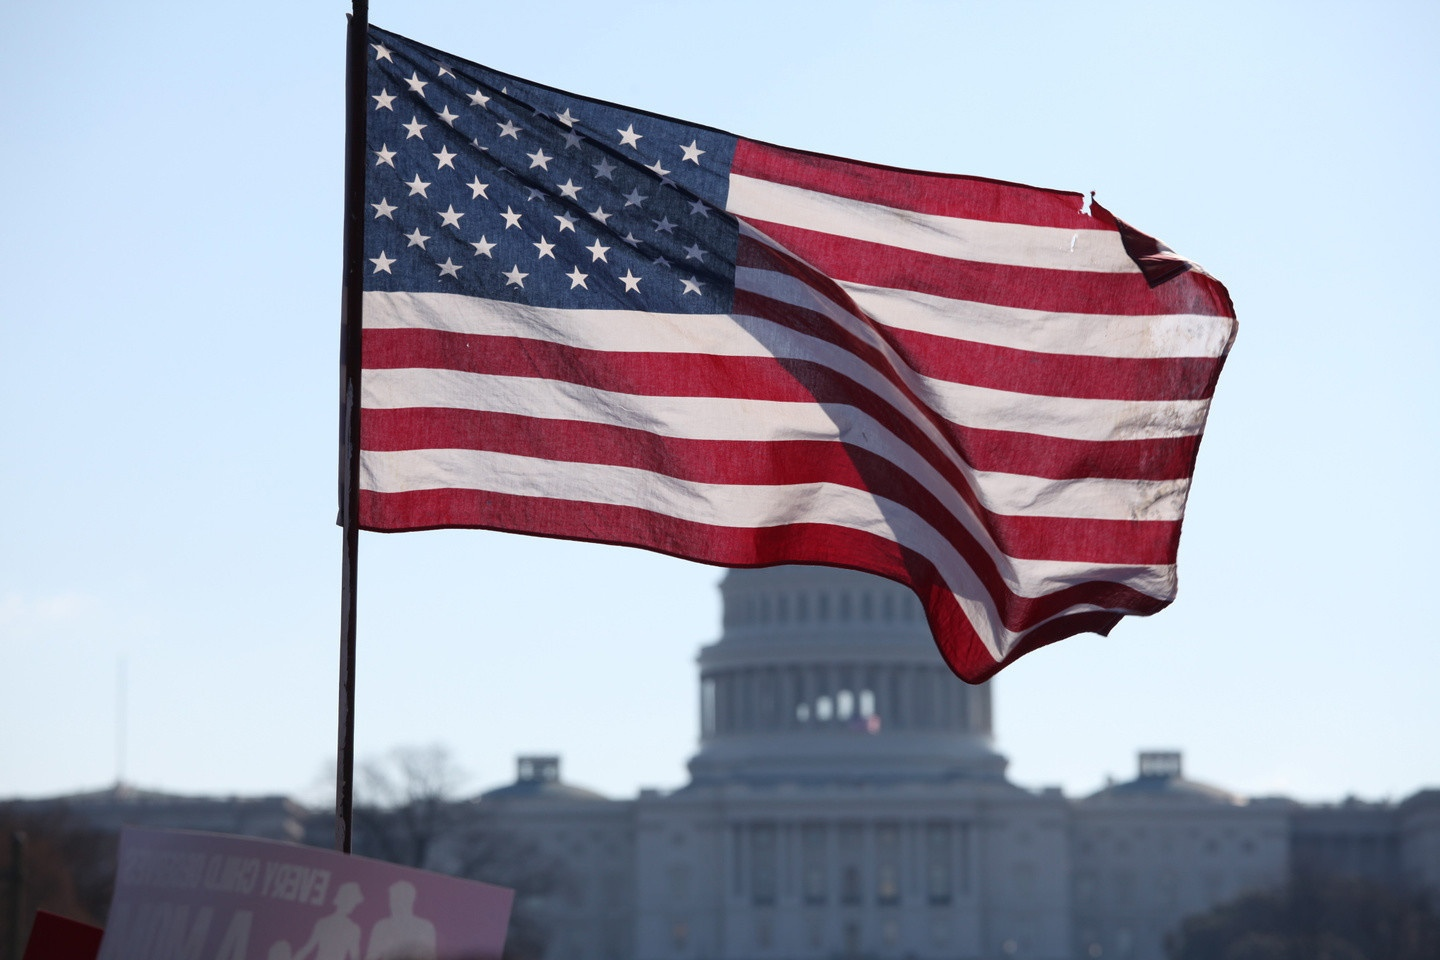 US says it does not want to impose sanctions against Russia